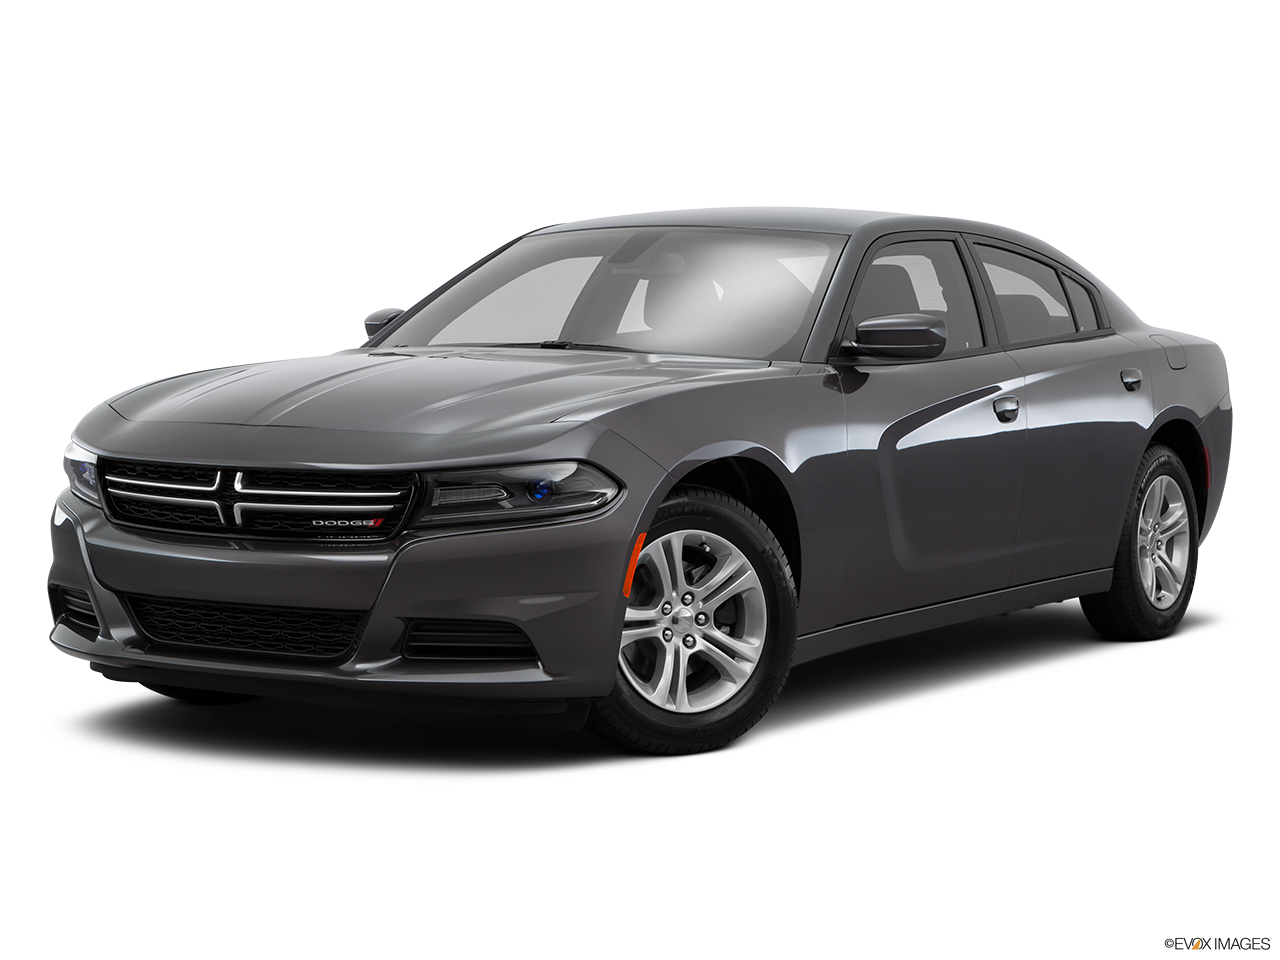 Test Drive A 2015 Dodge Charger at John L Sullivan Dodge Chrysler Jeep in Sacramento